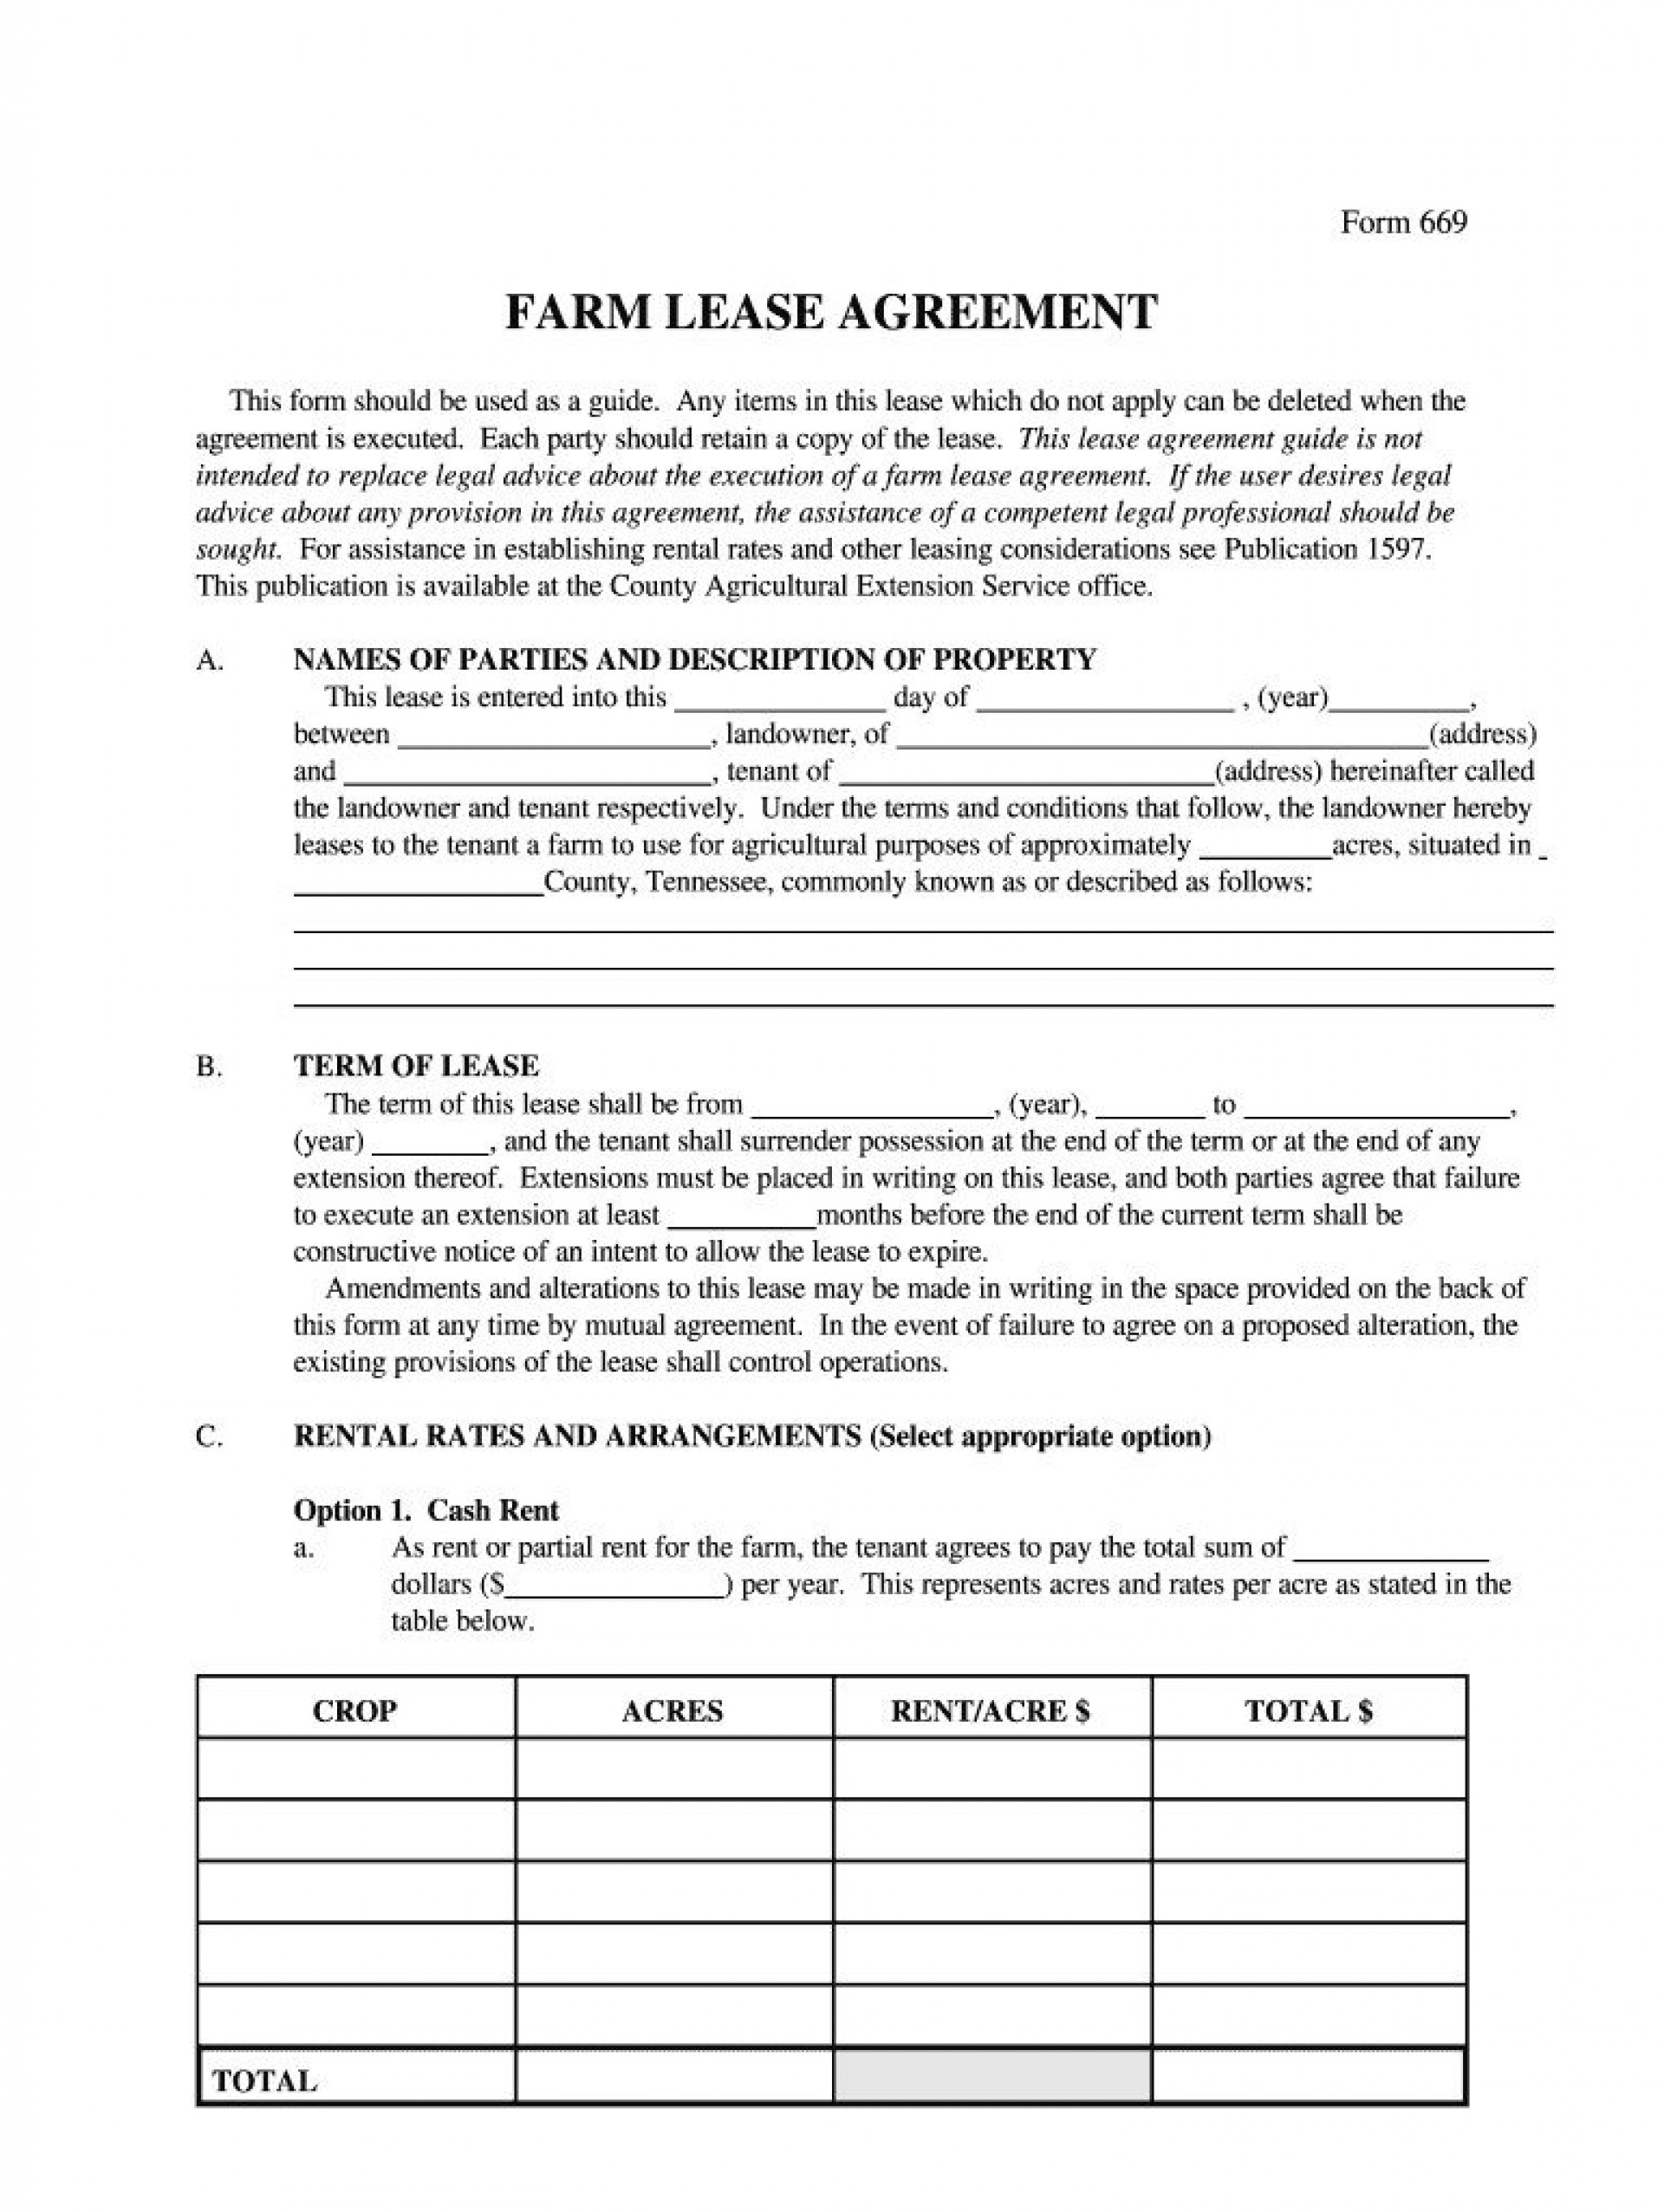 009 Simple Land Lease Agreement Template Design  Templates Uk Farm Free1920